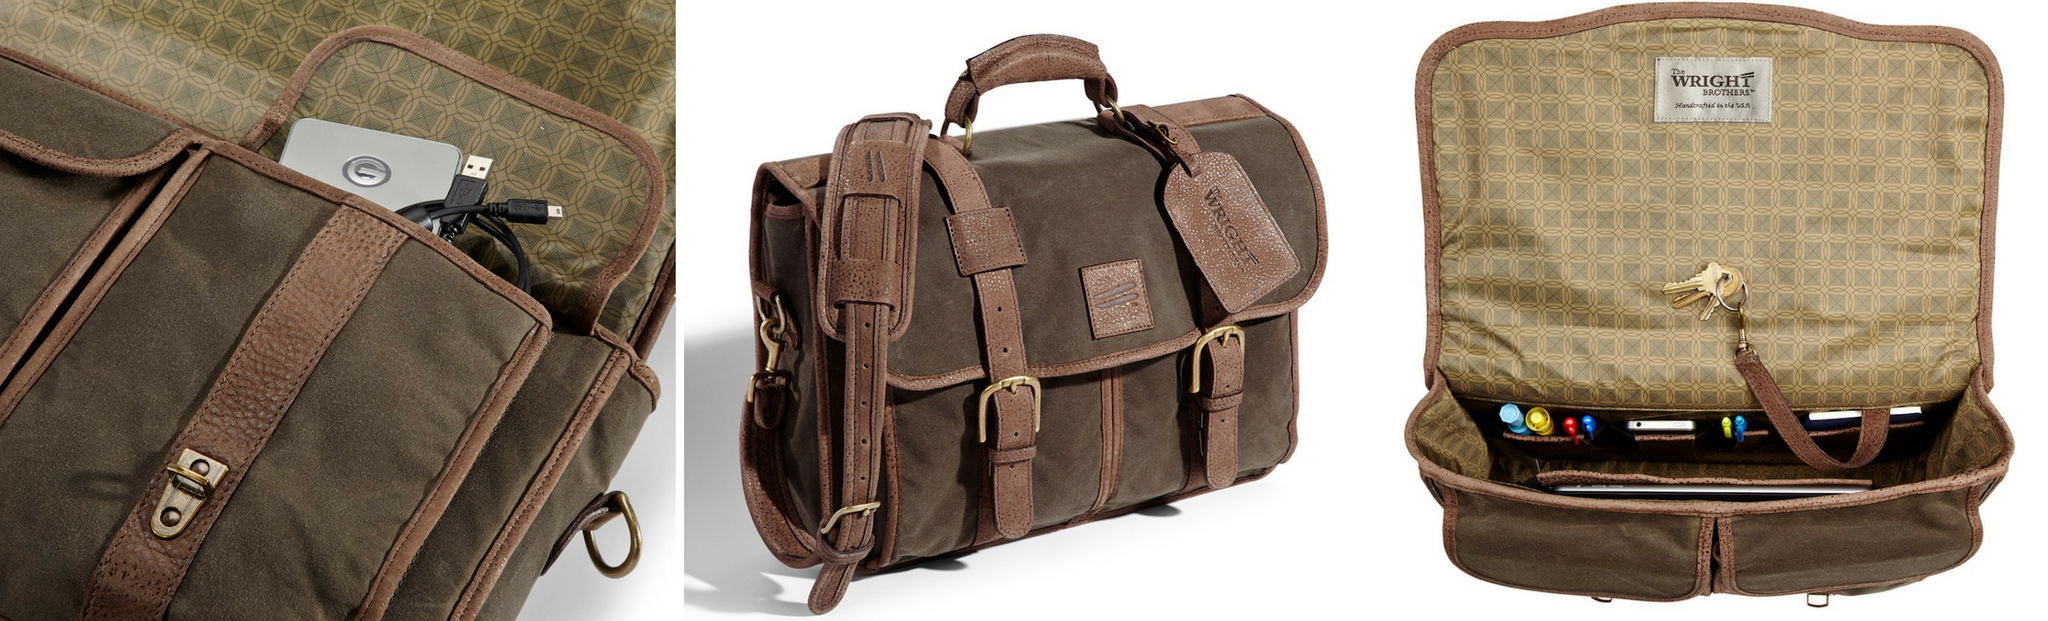 The Wright Brothers USA Bags and Cases Collection